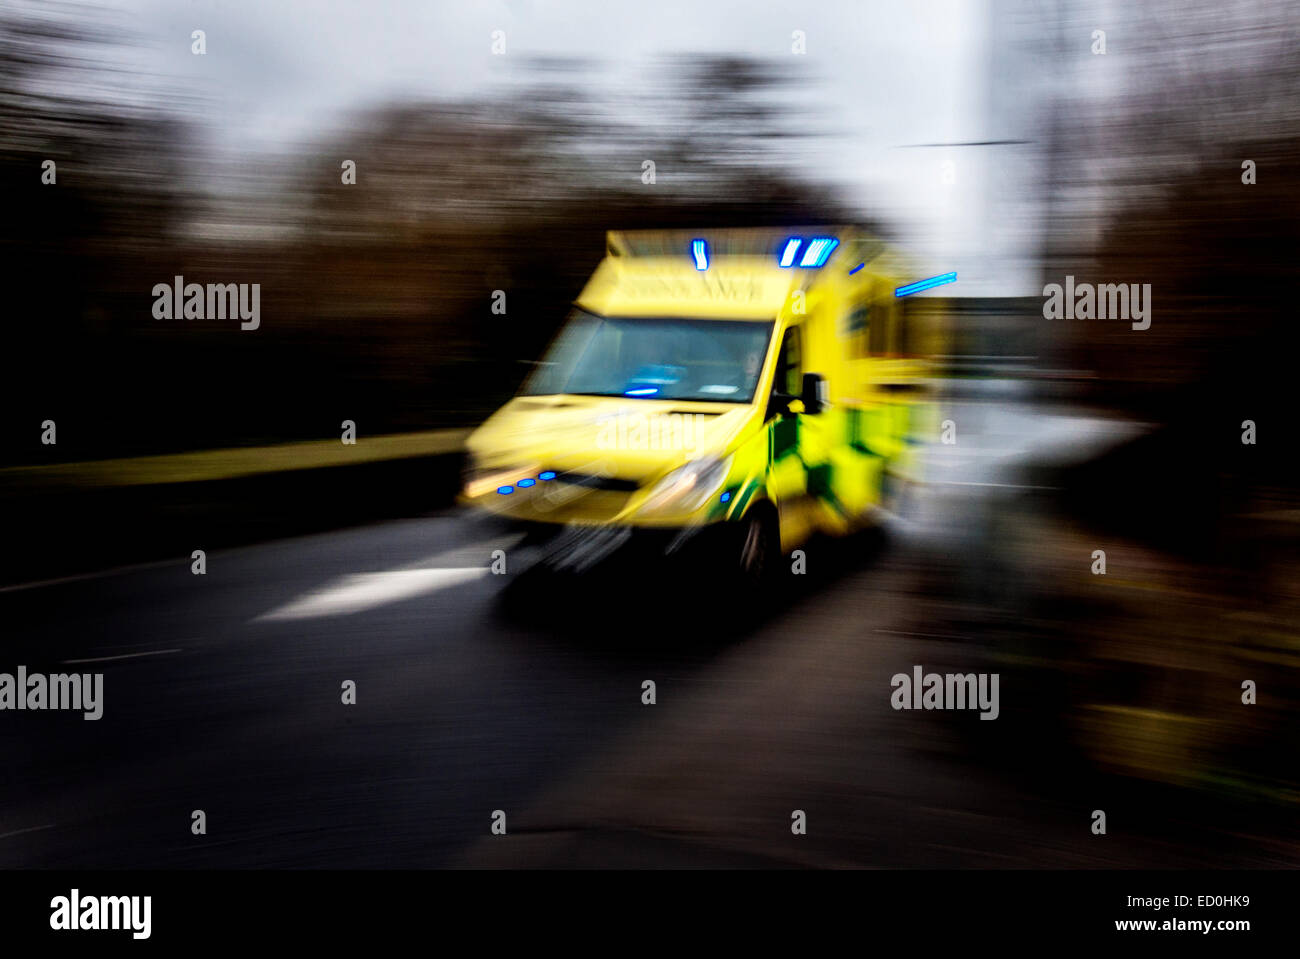 Fast moving ambulance responding to an emergency image showing speed blur. - Stock Image